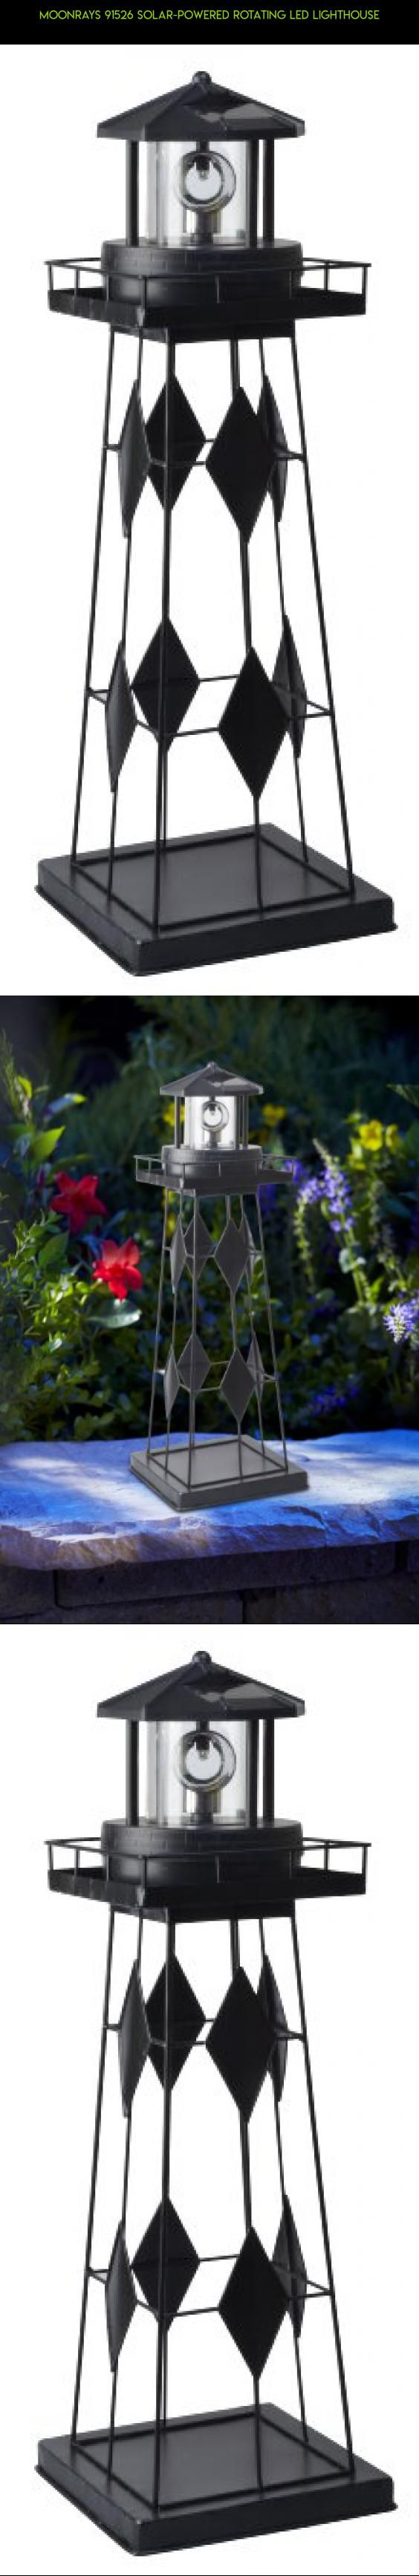 Moonrays 91526 Solar-Powered Rotating LED Lighthouse #drone #plans #products #fpv #decor #shopping #gadgets #kit #camera #gardening #technology #tech #racing #parts